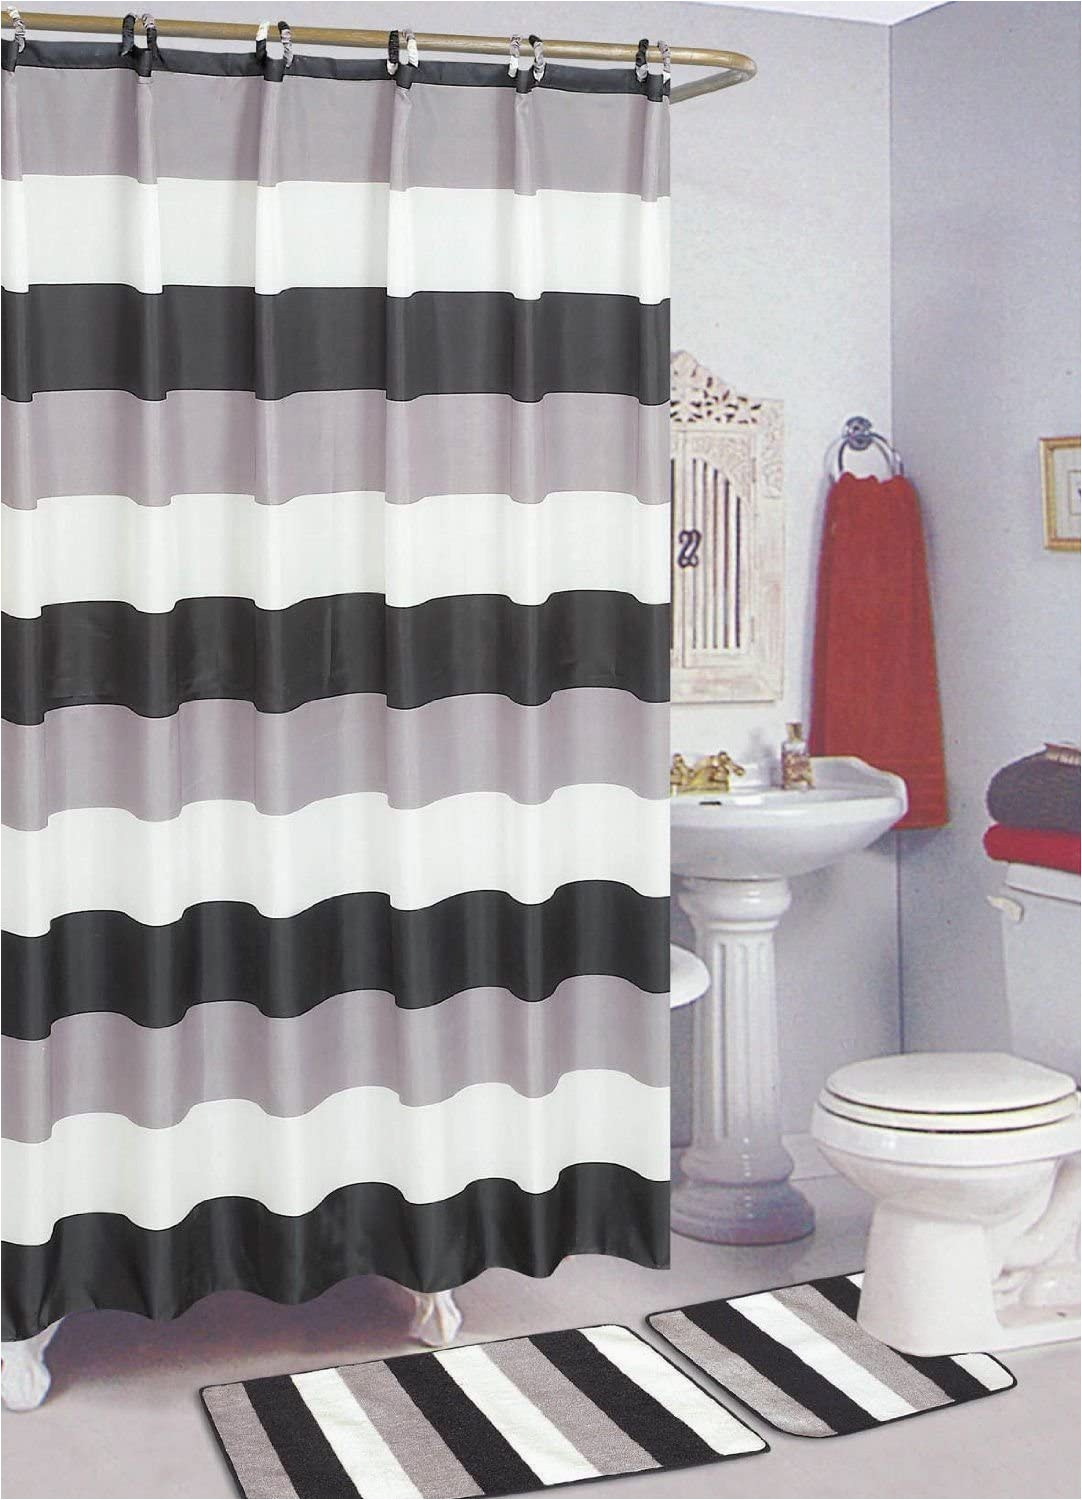 Shower Curtains with Matching Bath Rugs Empire Black & White 15 Piece Bathroom Set Bath Rugs Shower Curtain & Rings